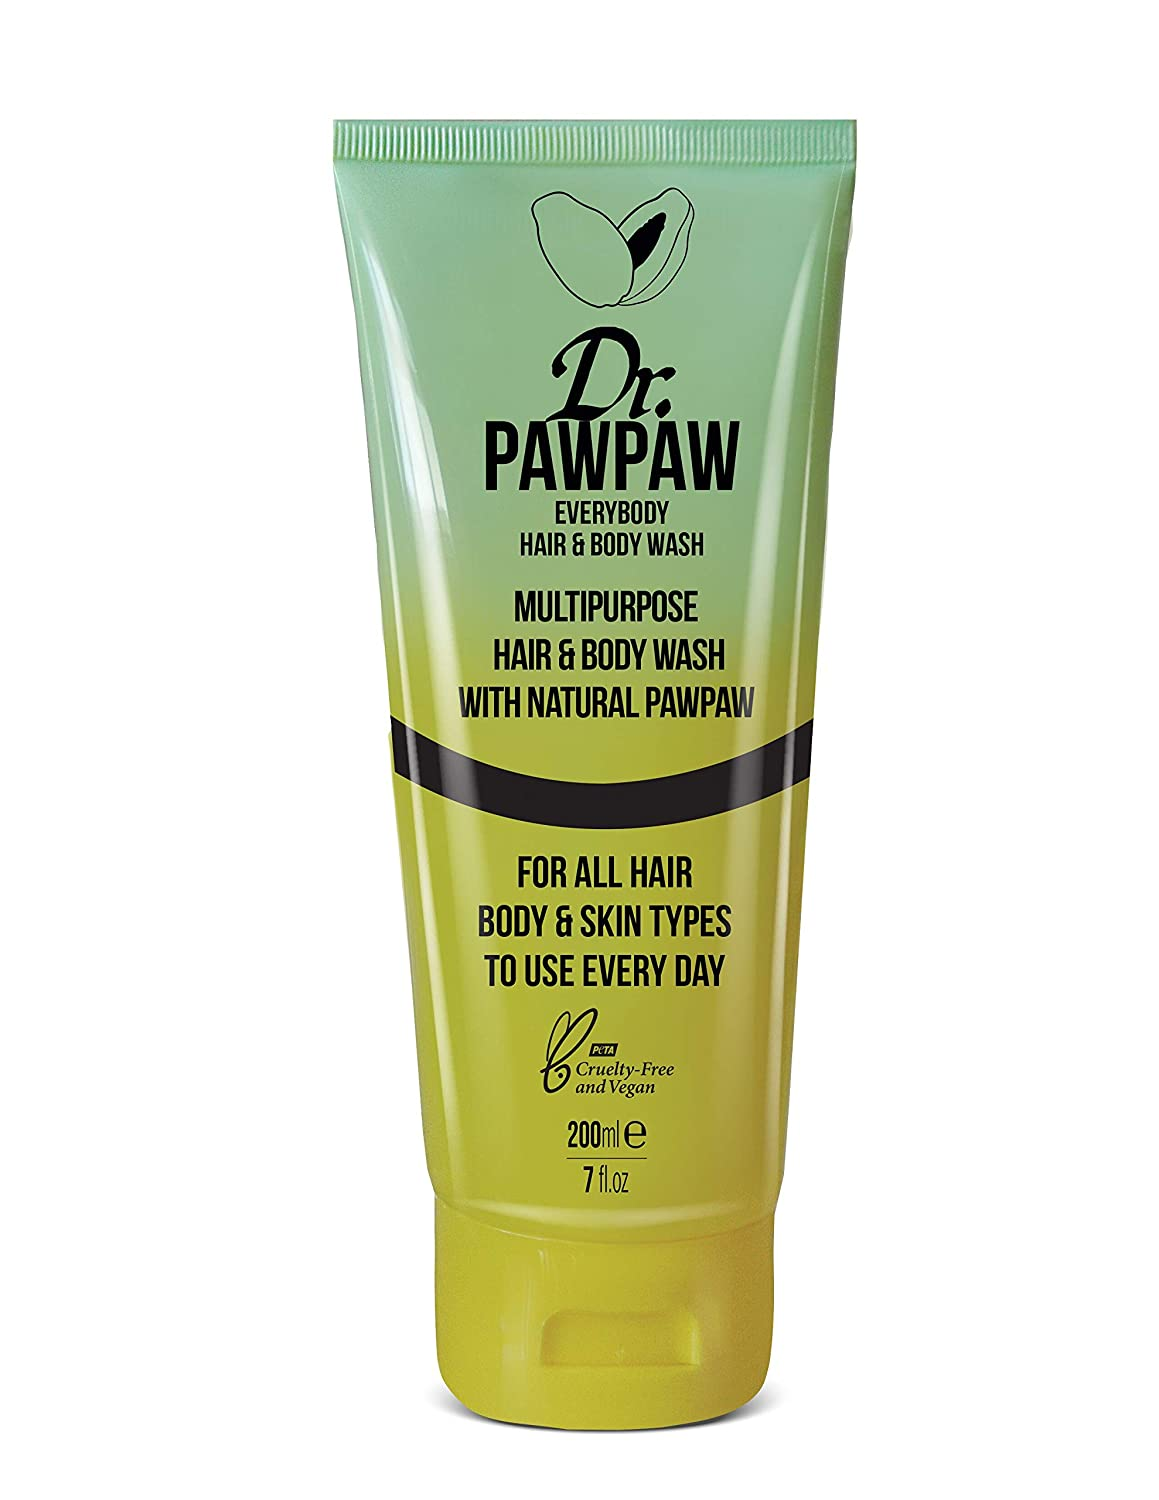 Dr. PAWPAW - Everybody Hair & Body | Multipurpose Hair & Body Cleanse and Condition with Natural PAWPAW | Safe For All Hair, Body & Skin Types (250 ml) (Hair & Body Wash)